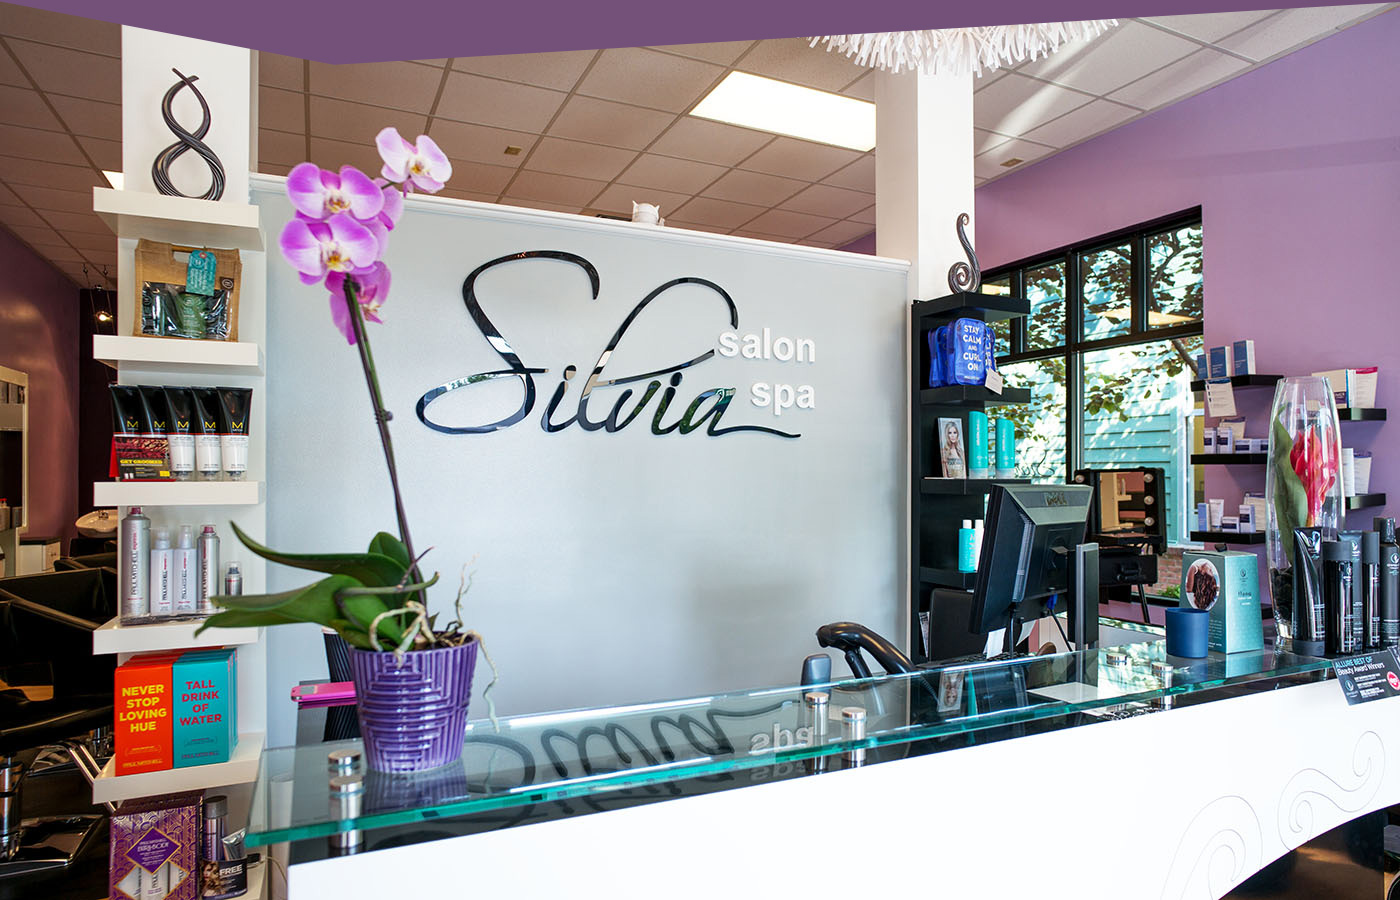 SILVIA SALON AND SPA